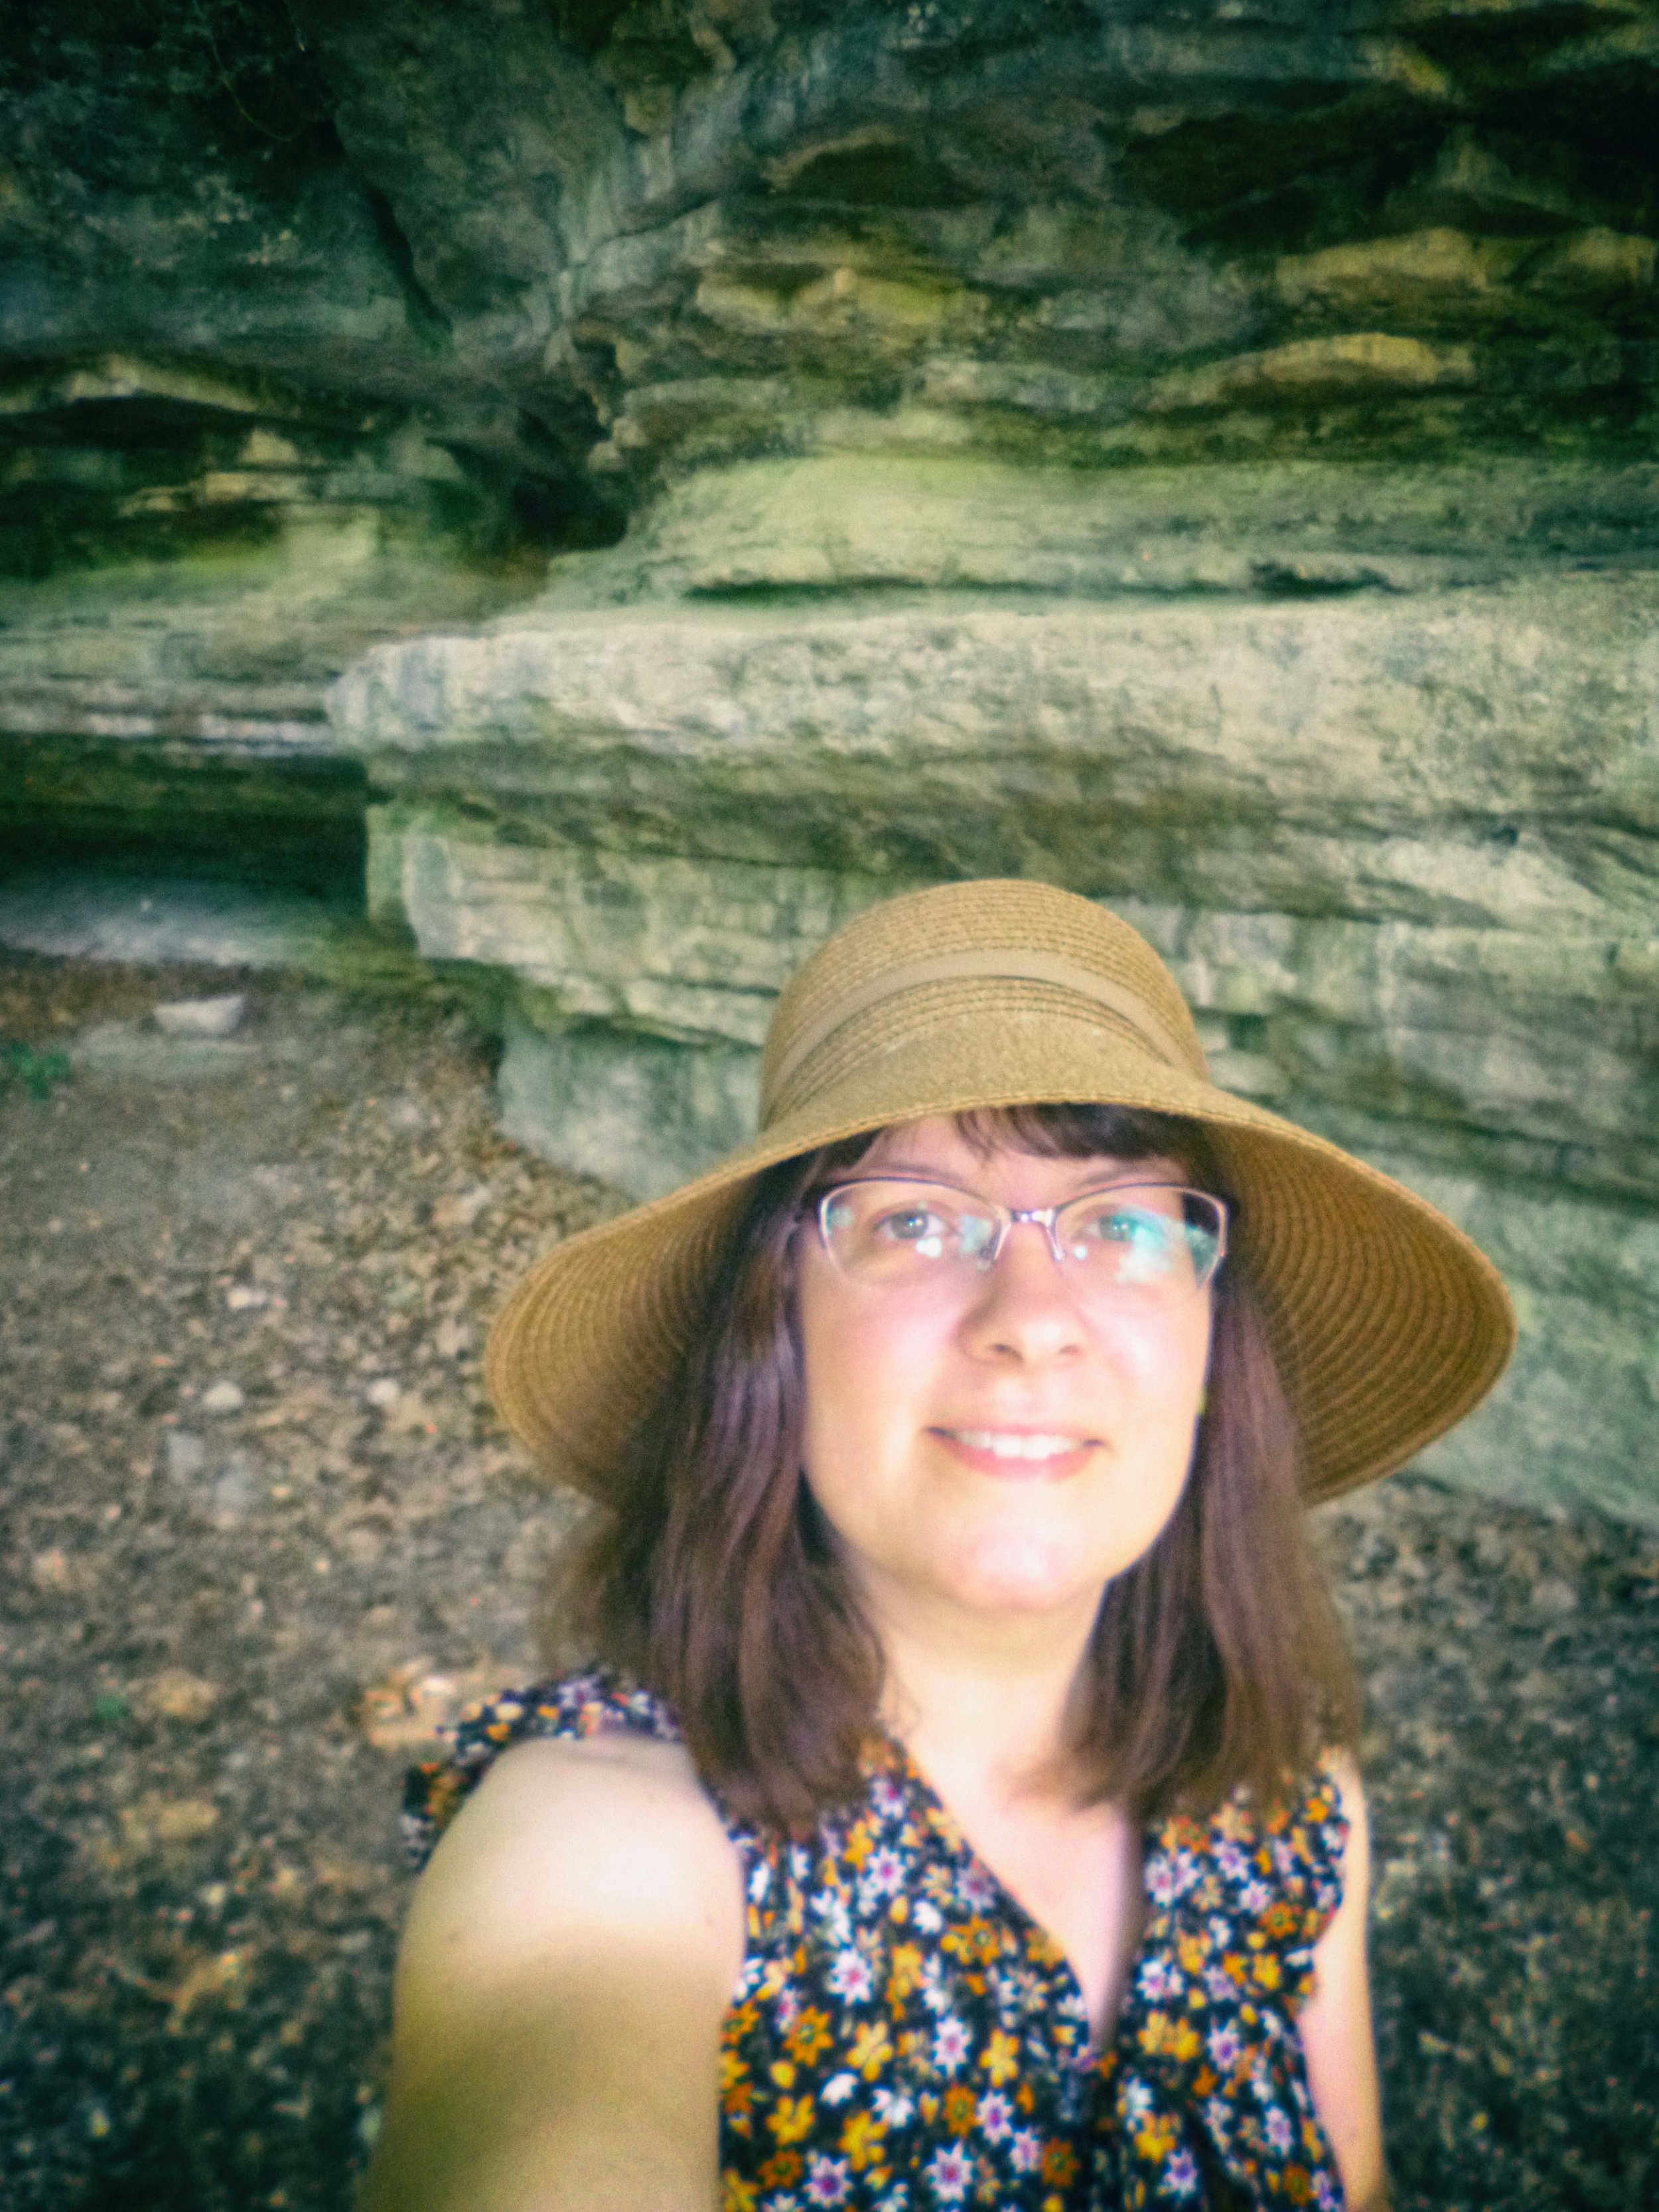 Melanie Faith - MelanieFaithis a poet, professor, and photographer. She wrote a craft book about the flash genre to inspire fellow writers, In a Flash!: Writing & Publishing Dynamic Flash Prose (Vine Leaves Press, April 2018,http://www.vineleavespress.com/in-a-flash-by-melanie-faith.html), and her next book, Poetry Power, will be published (Vine Leaves Press) in October 2018. Her flash-fiction craft articles appeared in Nunum (August and June 2018). Her short stories are forthcoming from Red Coyote (fall 2018). Her historical poetry collection, This Passing Fever, set in 1918's influenza epidemic, was published by FutureCycle press in early September 2017.Melaniecollects quotes, books, and twinkly costume-jewelry brooches. To learn more, visit:https://www.melaniedfaith.com/blog/